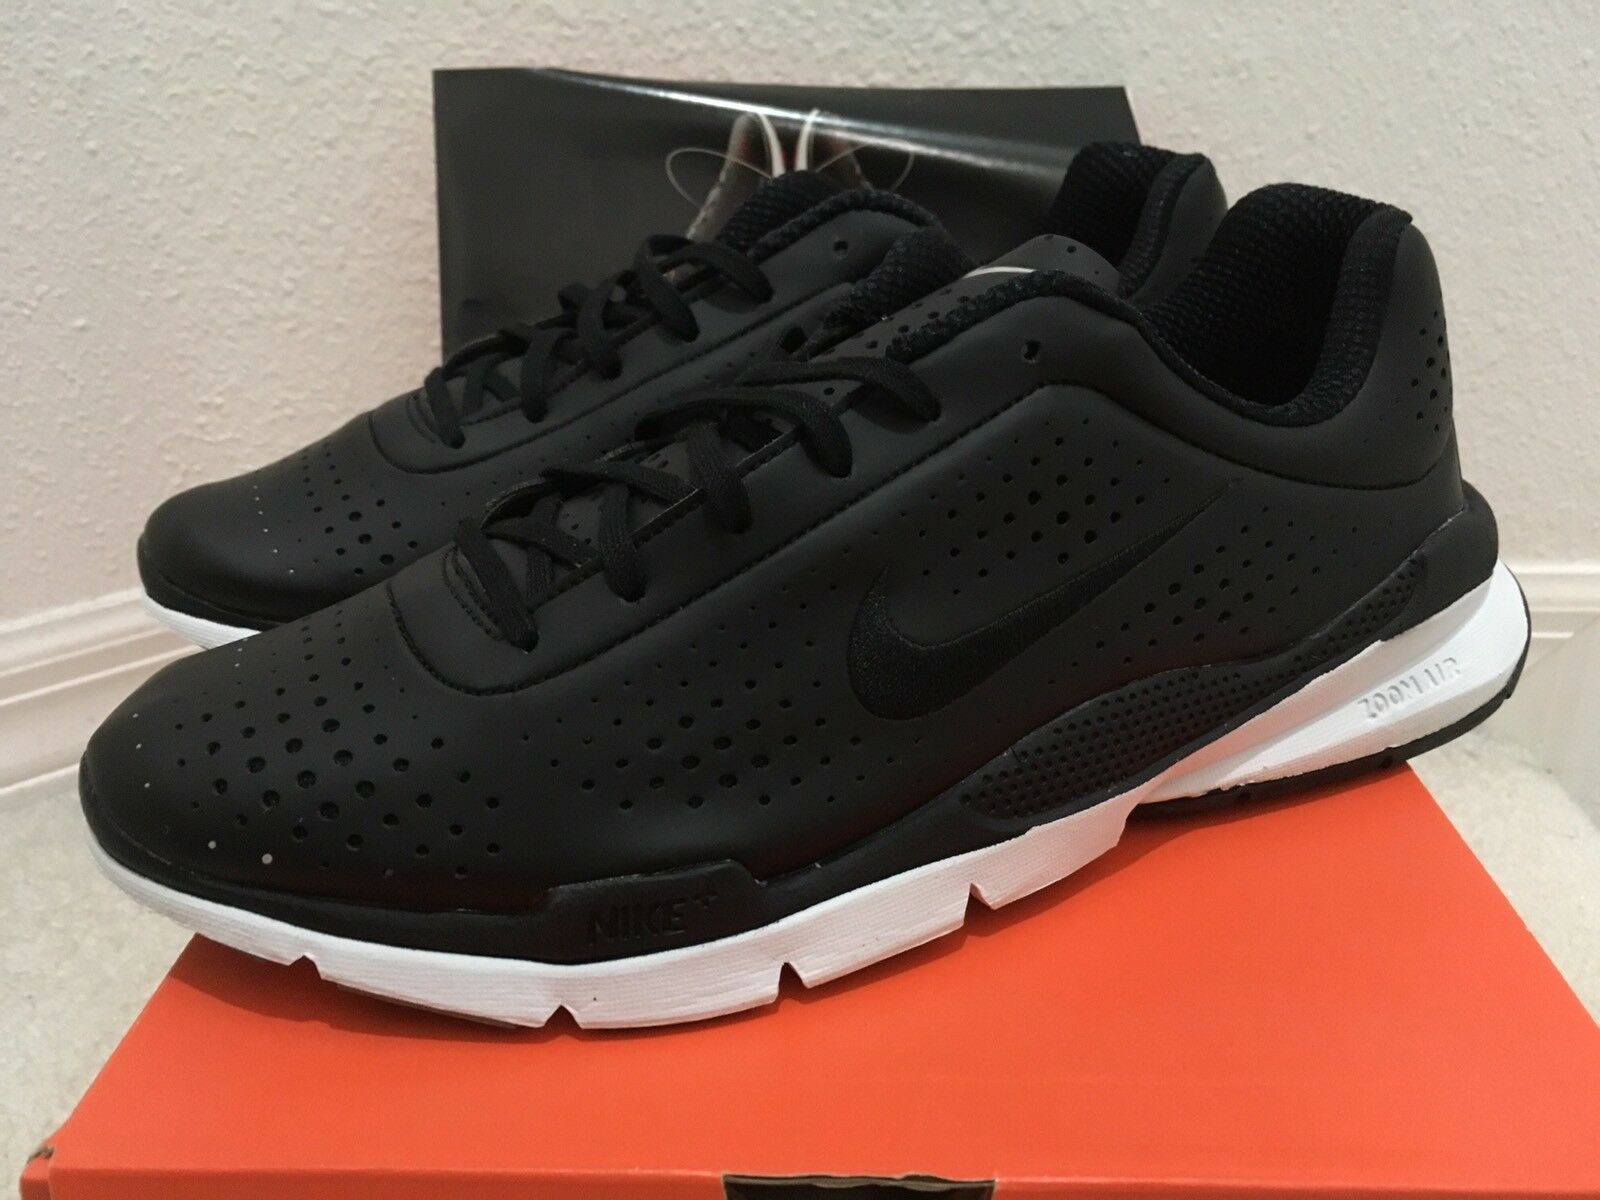 Nike Air Zoom Moire+ Black / White Men Sz 10 314917-002